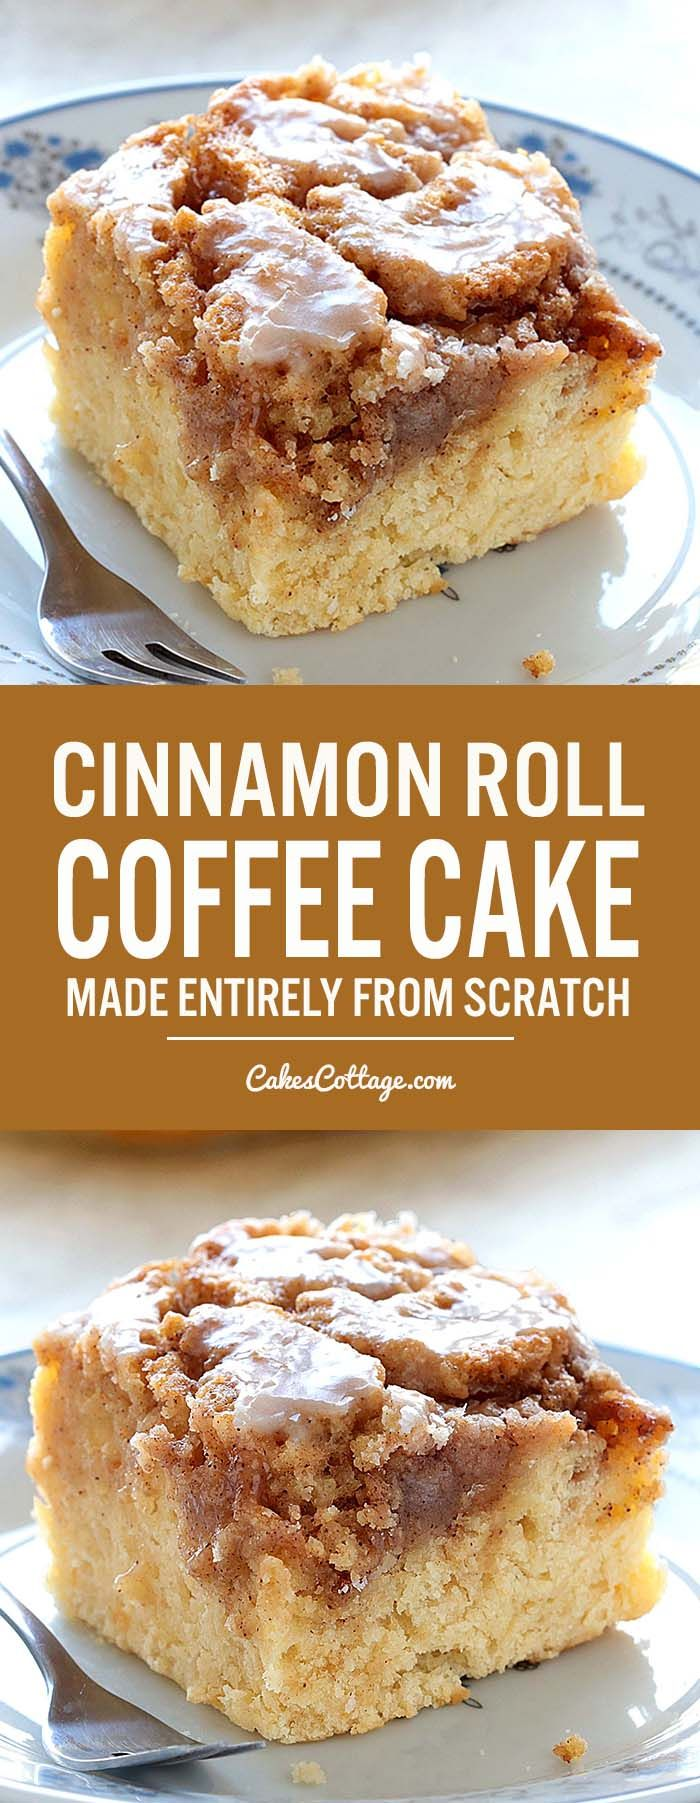 #Easy #Cinnamon #Roll #Coffee #Cake is simple and quick #recipe for #delicious, #homemade #coffee cake from #scratch, with #ingredients that you already have in #pantry. #Recipes #Recipesgrowtopia #recipesmycafe #recipespixelworld #recipesgt #recipescake #recipeschicken #recipesliquid #food #foodporn #recipesfood #cake #cookies #healthy #mom #kids #wedding #cakewedding